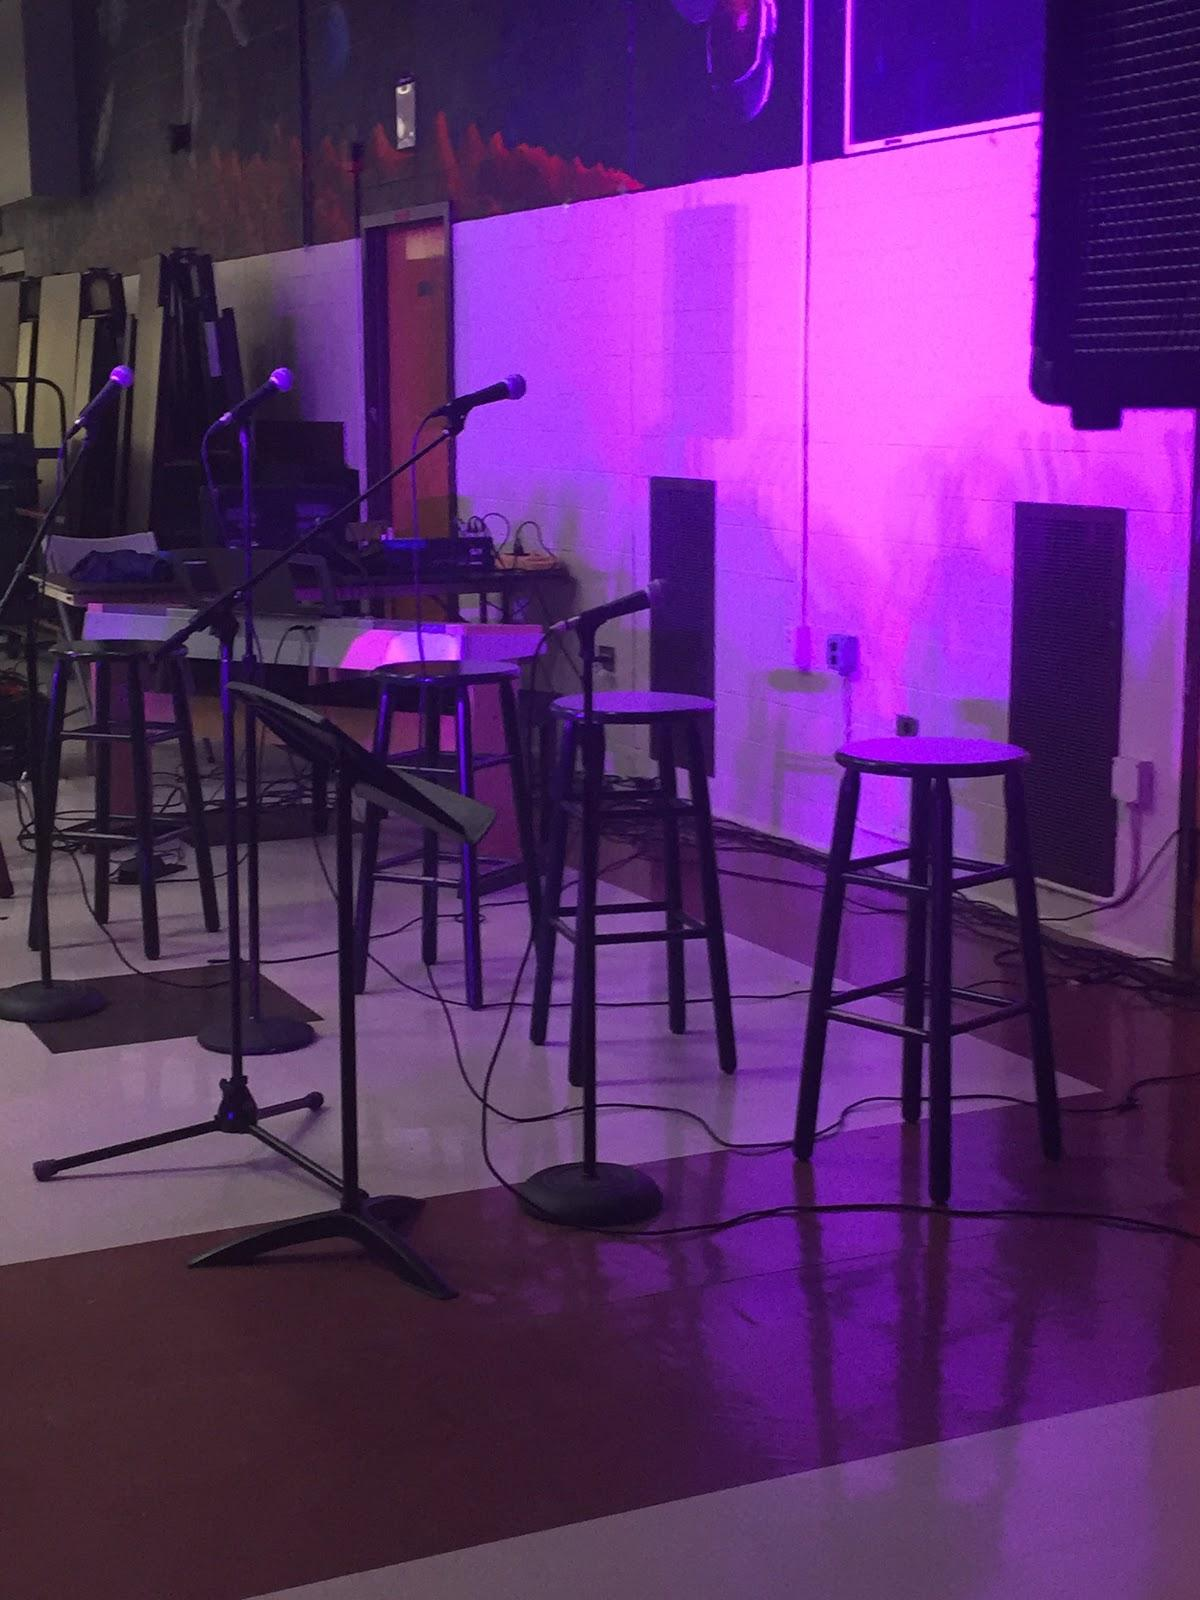 A view of the stage setup for Coffeehouse XLI